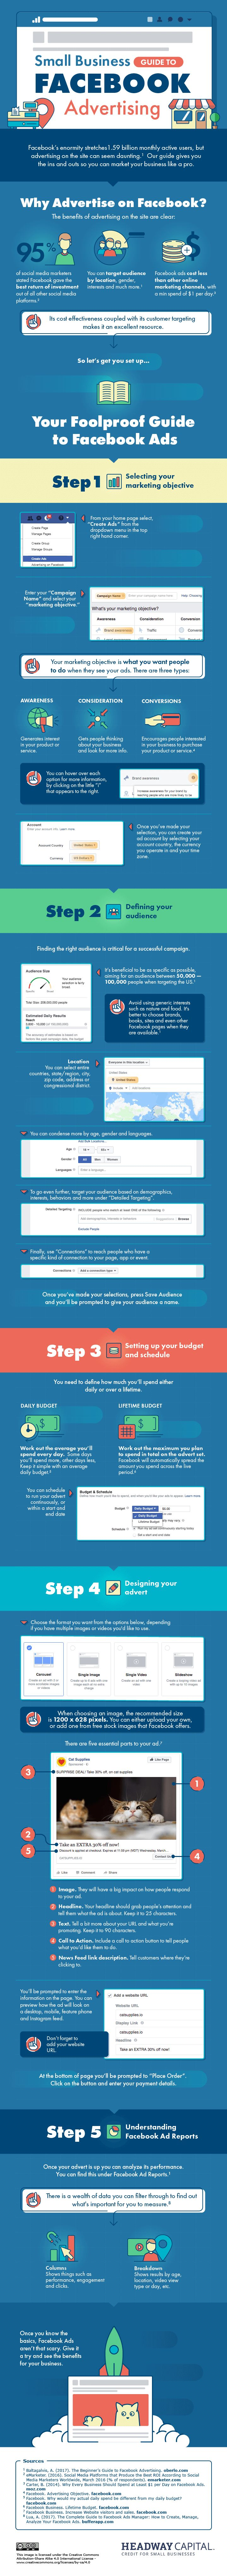 A Small-Business Guide to Facebook Advertising (Infographic)  #socialmedia #marketing #contentmarketing